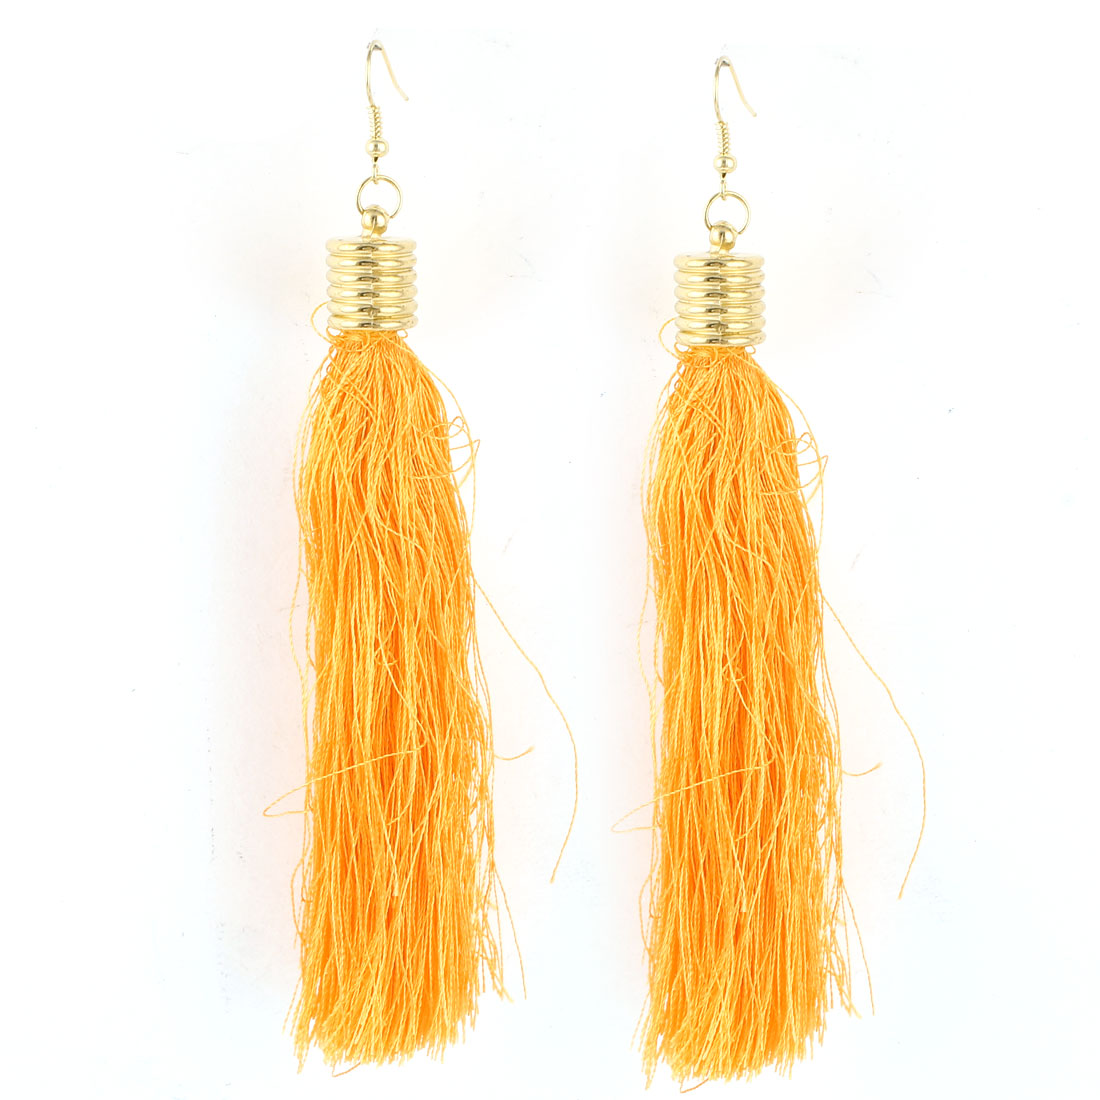 Ladies Ear Decoration Nylon Tassels Pendant Fish Hook Earrings Orange Pair